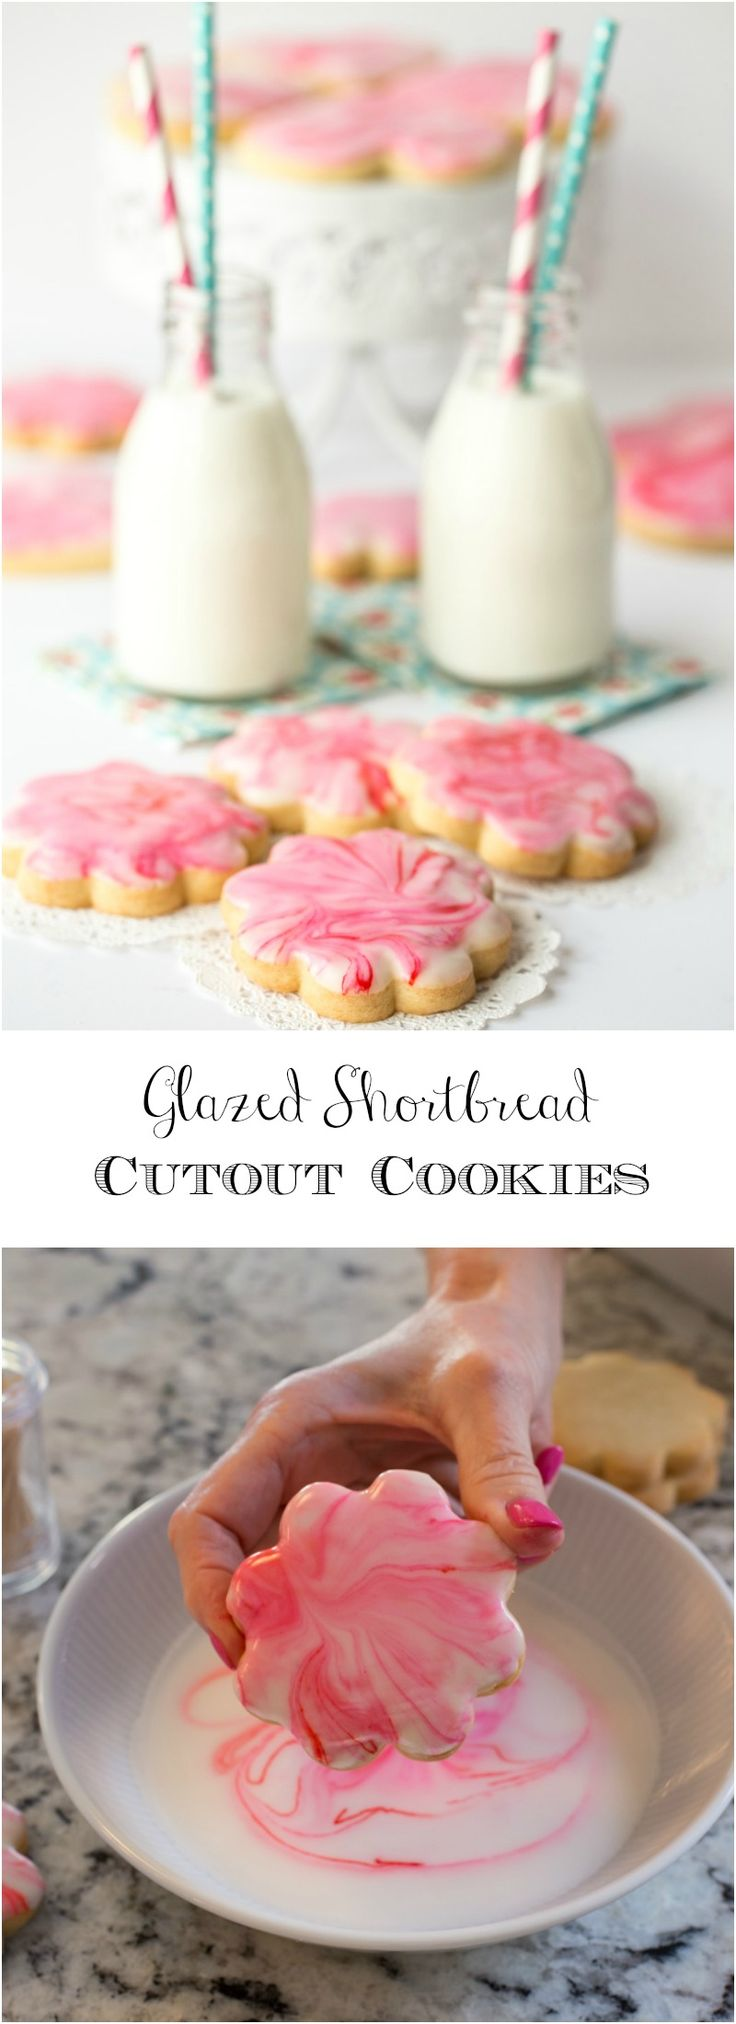 Glazed Shortbread Cutout Cookies - melt in your mouth buttery crisp shortbread cookies with a beautiful (and delicious!) glaze.